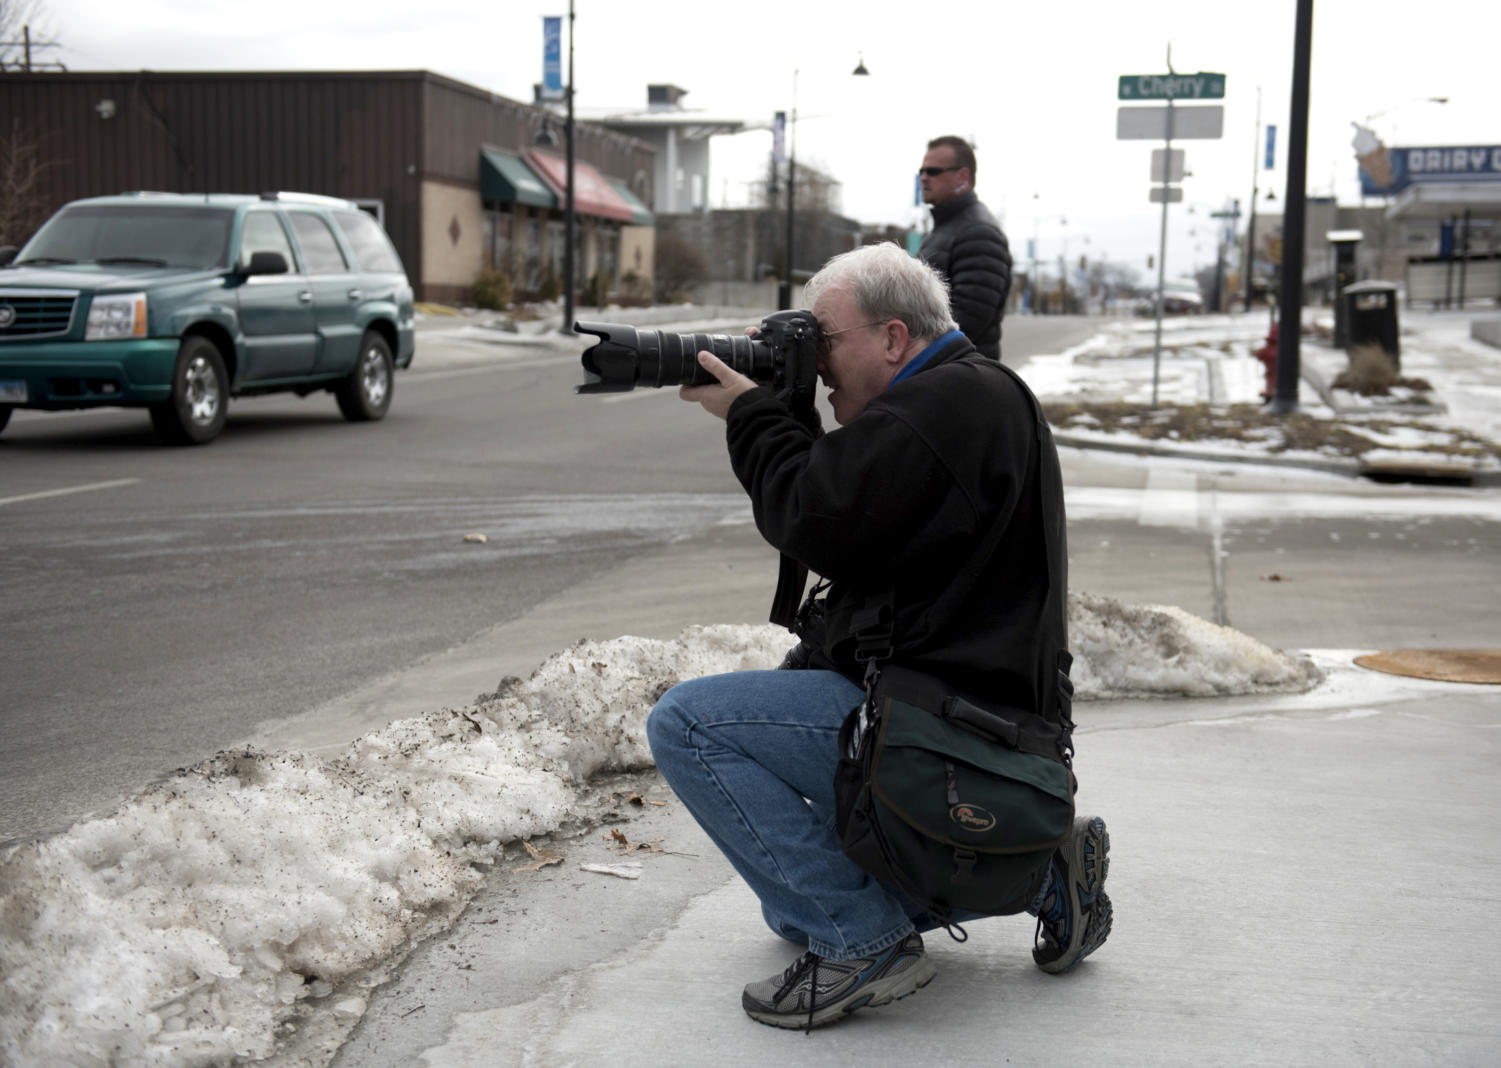 Photojournalist Richard Sitler photographs demonstrators Saturday, Jan. 20, 2018, during the Southern Illinois March to the Polls in Carbondale. (Dylan Nelson | @Dylan_Nelson99)